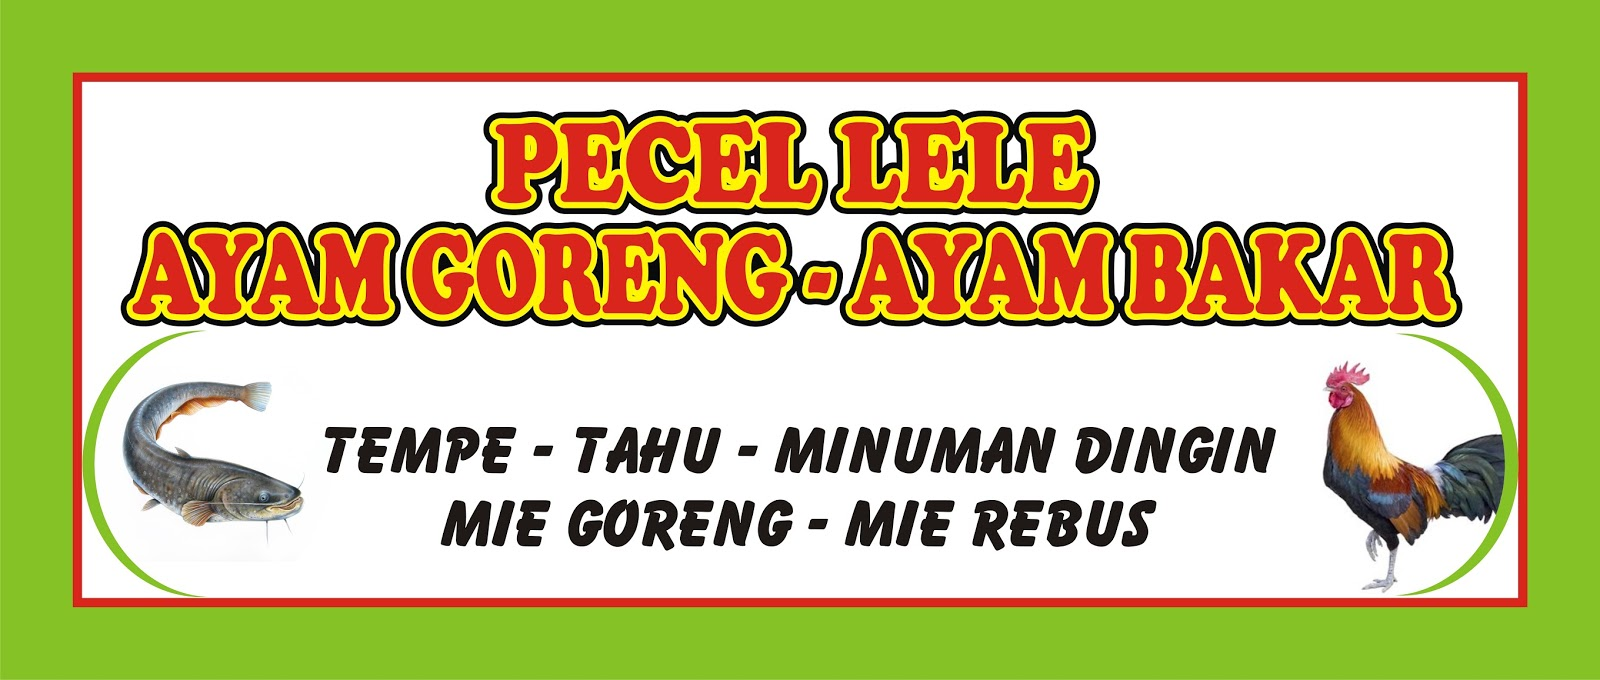 20+ Fantastic Ideas Download Desain Spanduk Pecel Lele Cdr ...